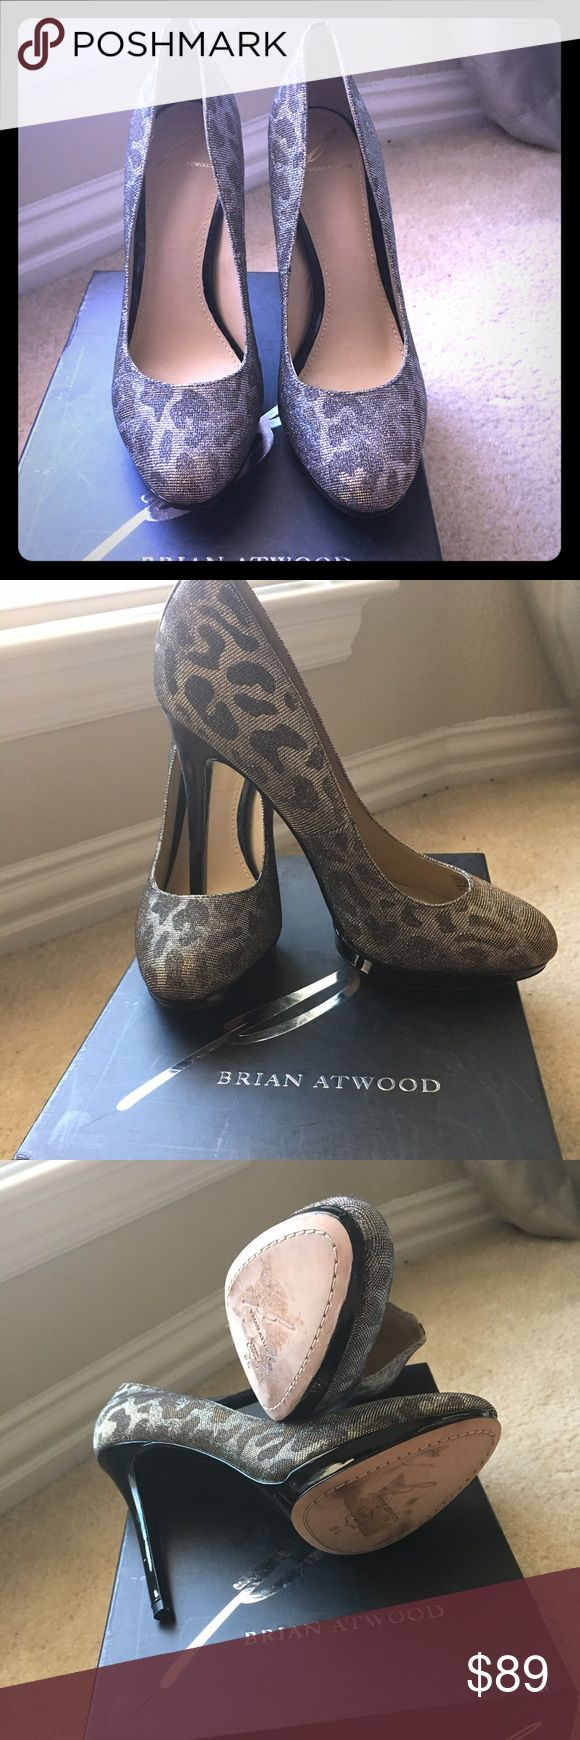 Brian Atwood bffredrique silver glitter pumps 8.5 Beautiful pair of classic Brian Atwood. Never worn, new with box and dust bag. B Brian Atwood Shoes Heels